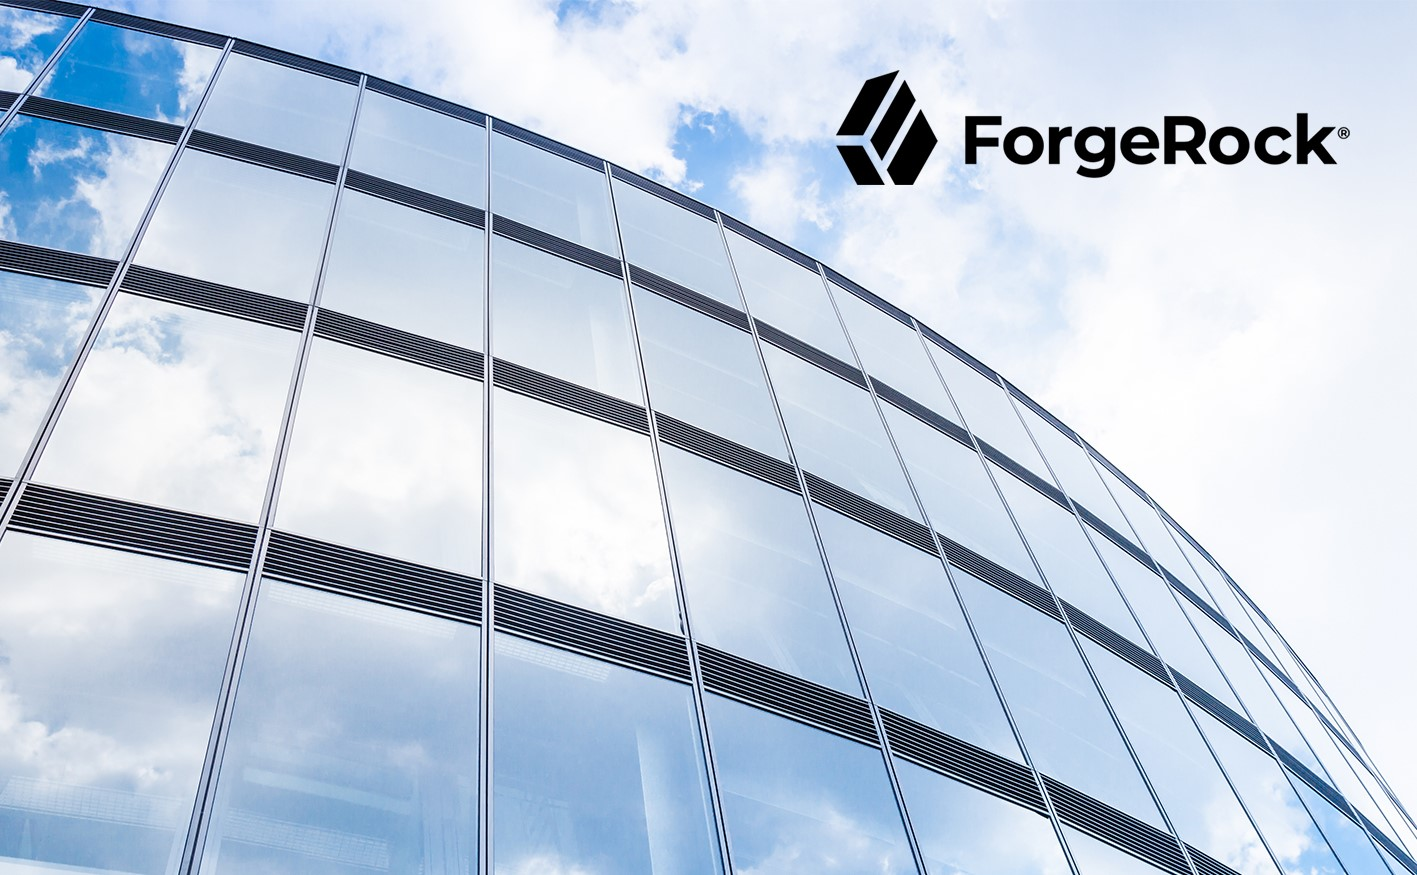 ForgeRock partnership